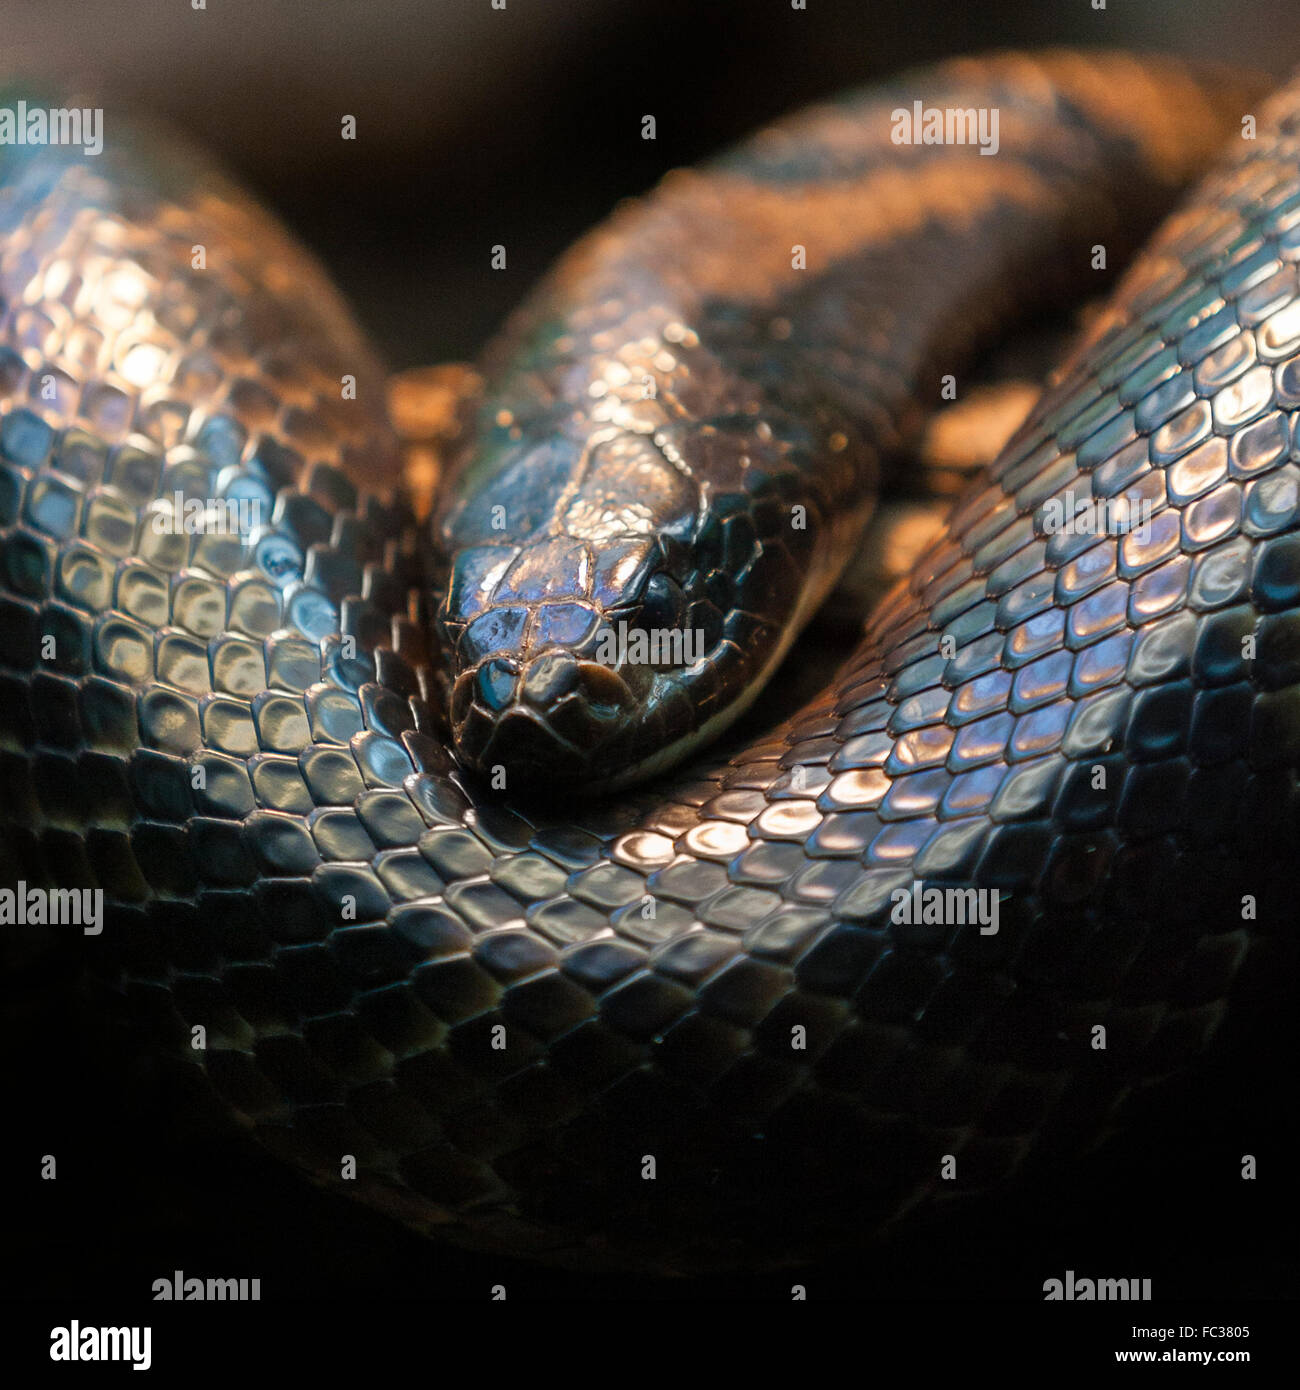 scary-looking-snake-rolled-up-on-a-dark-